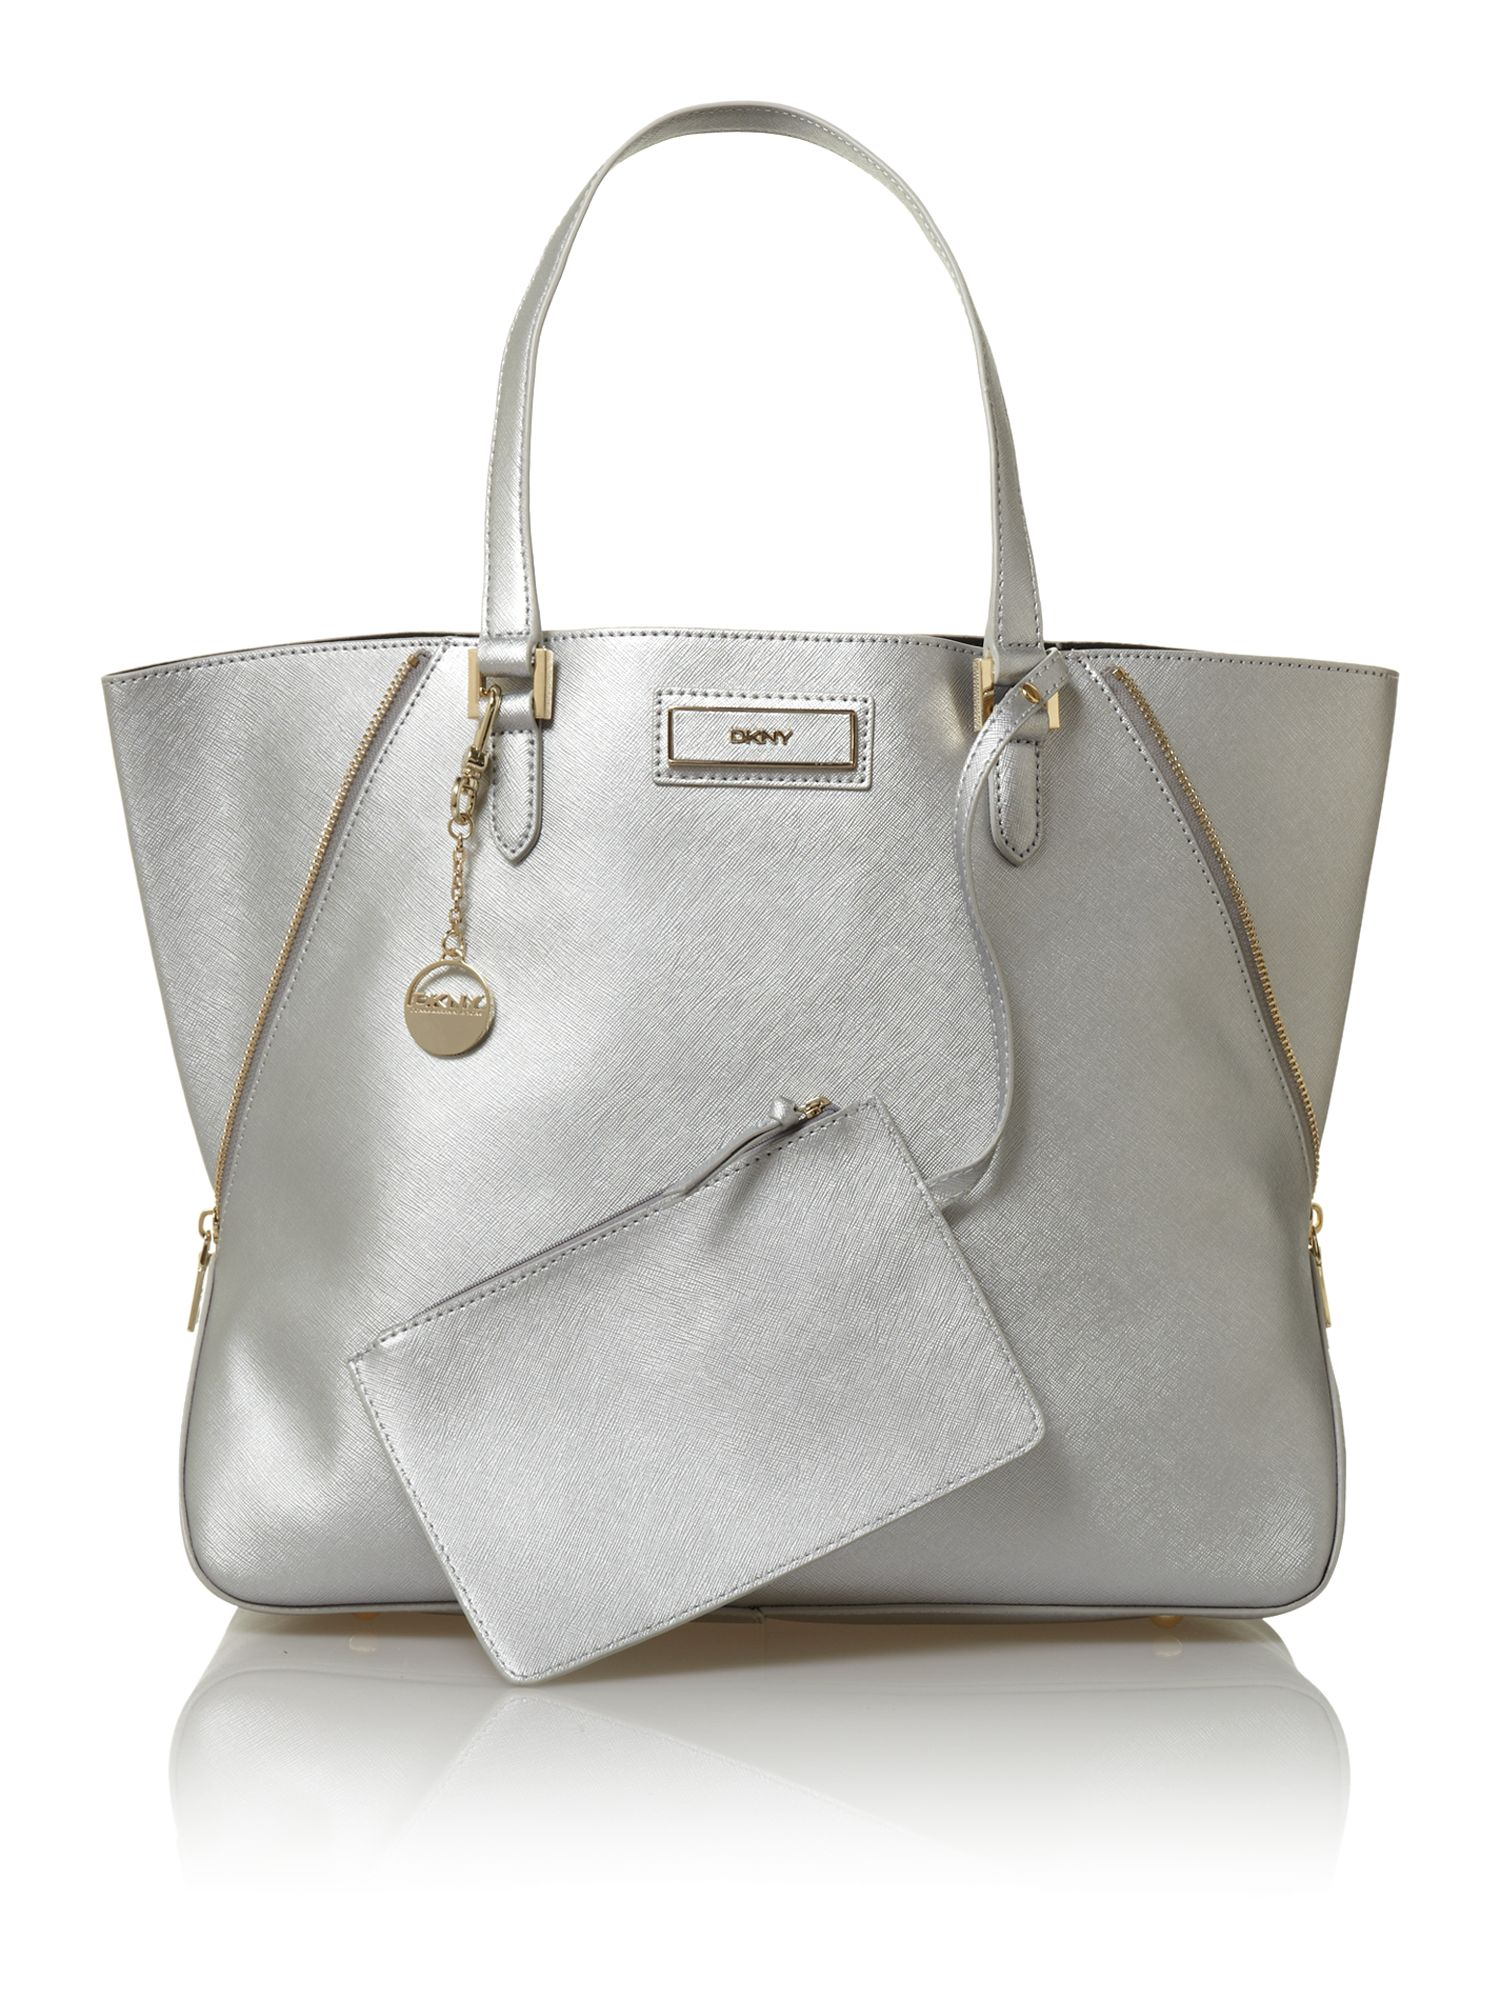 Dkny Saffiano Metallic Large Tote Bag in Gray | Lyst